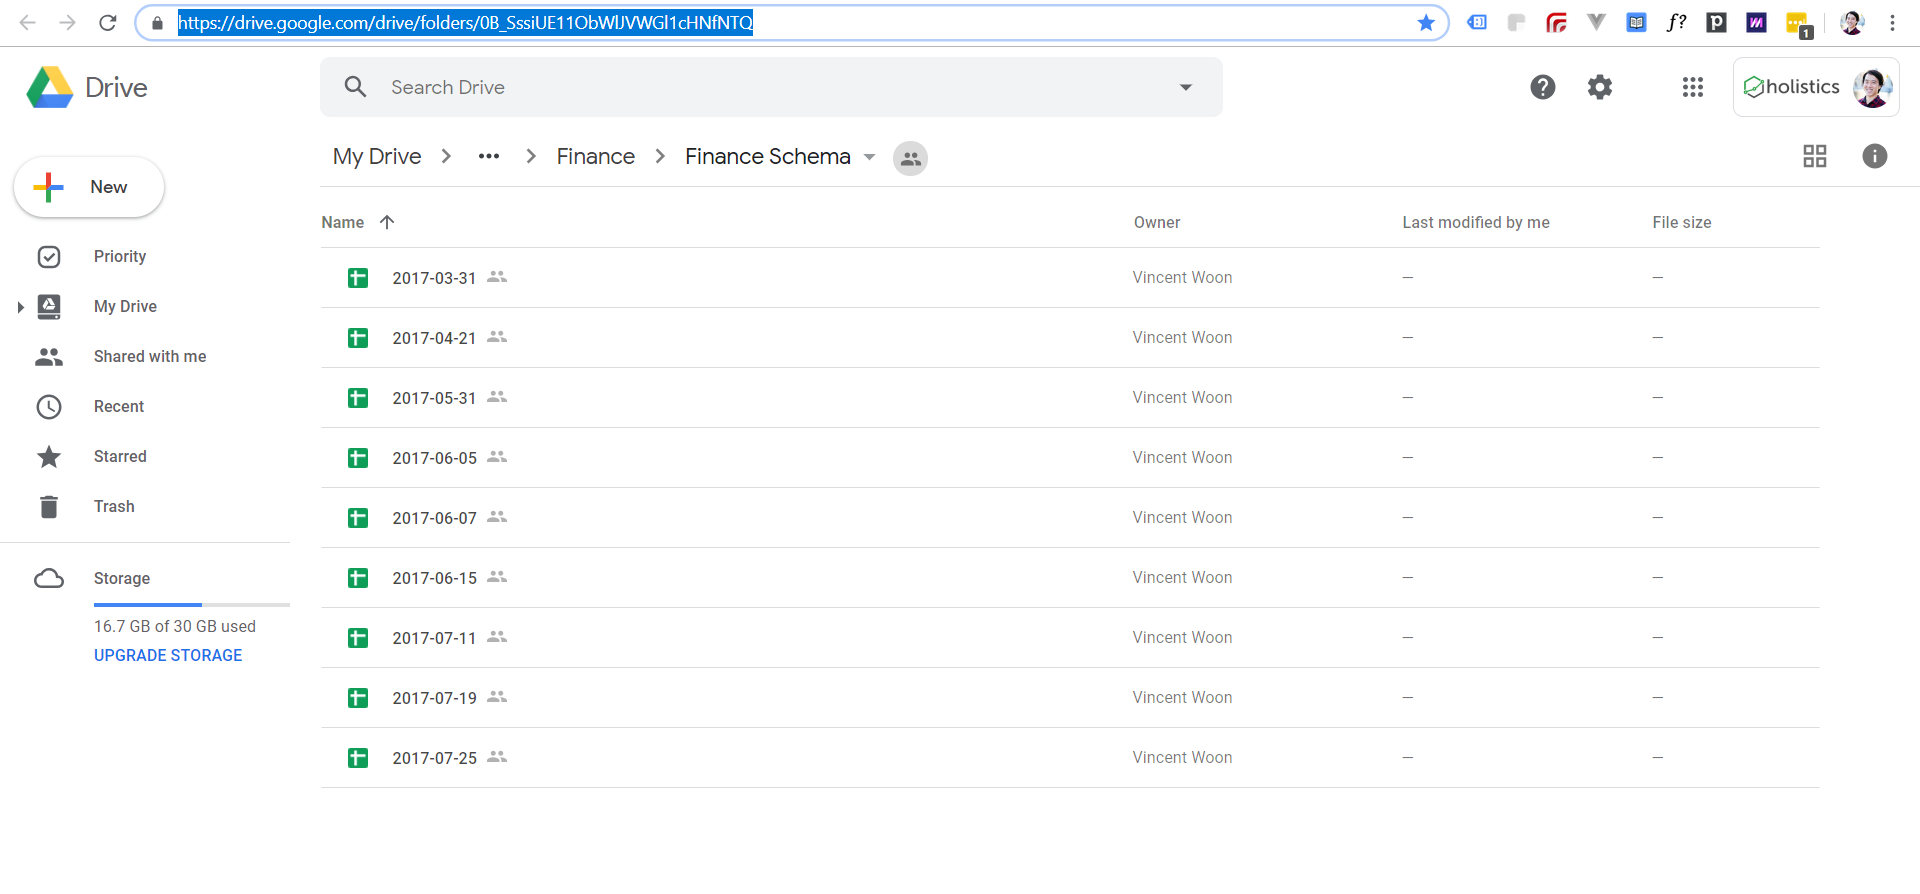 Import New Google Drive Folder Data Into Tables | Business